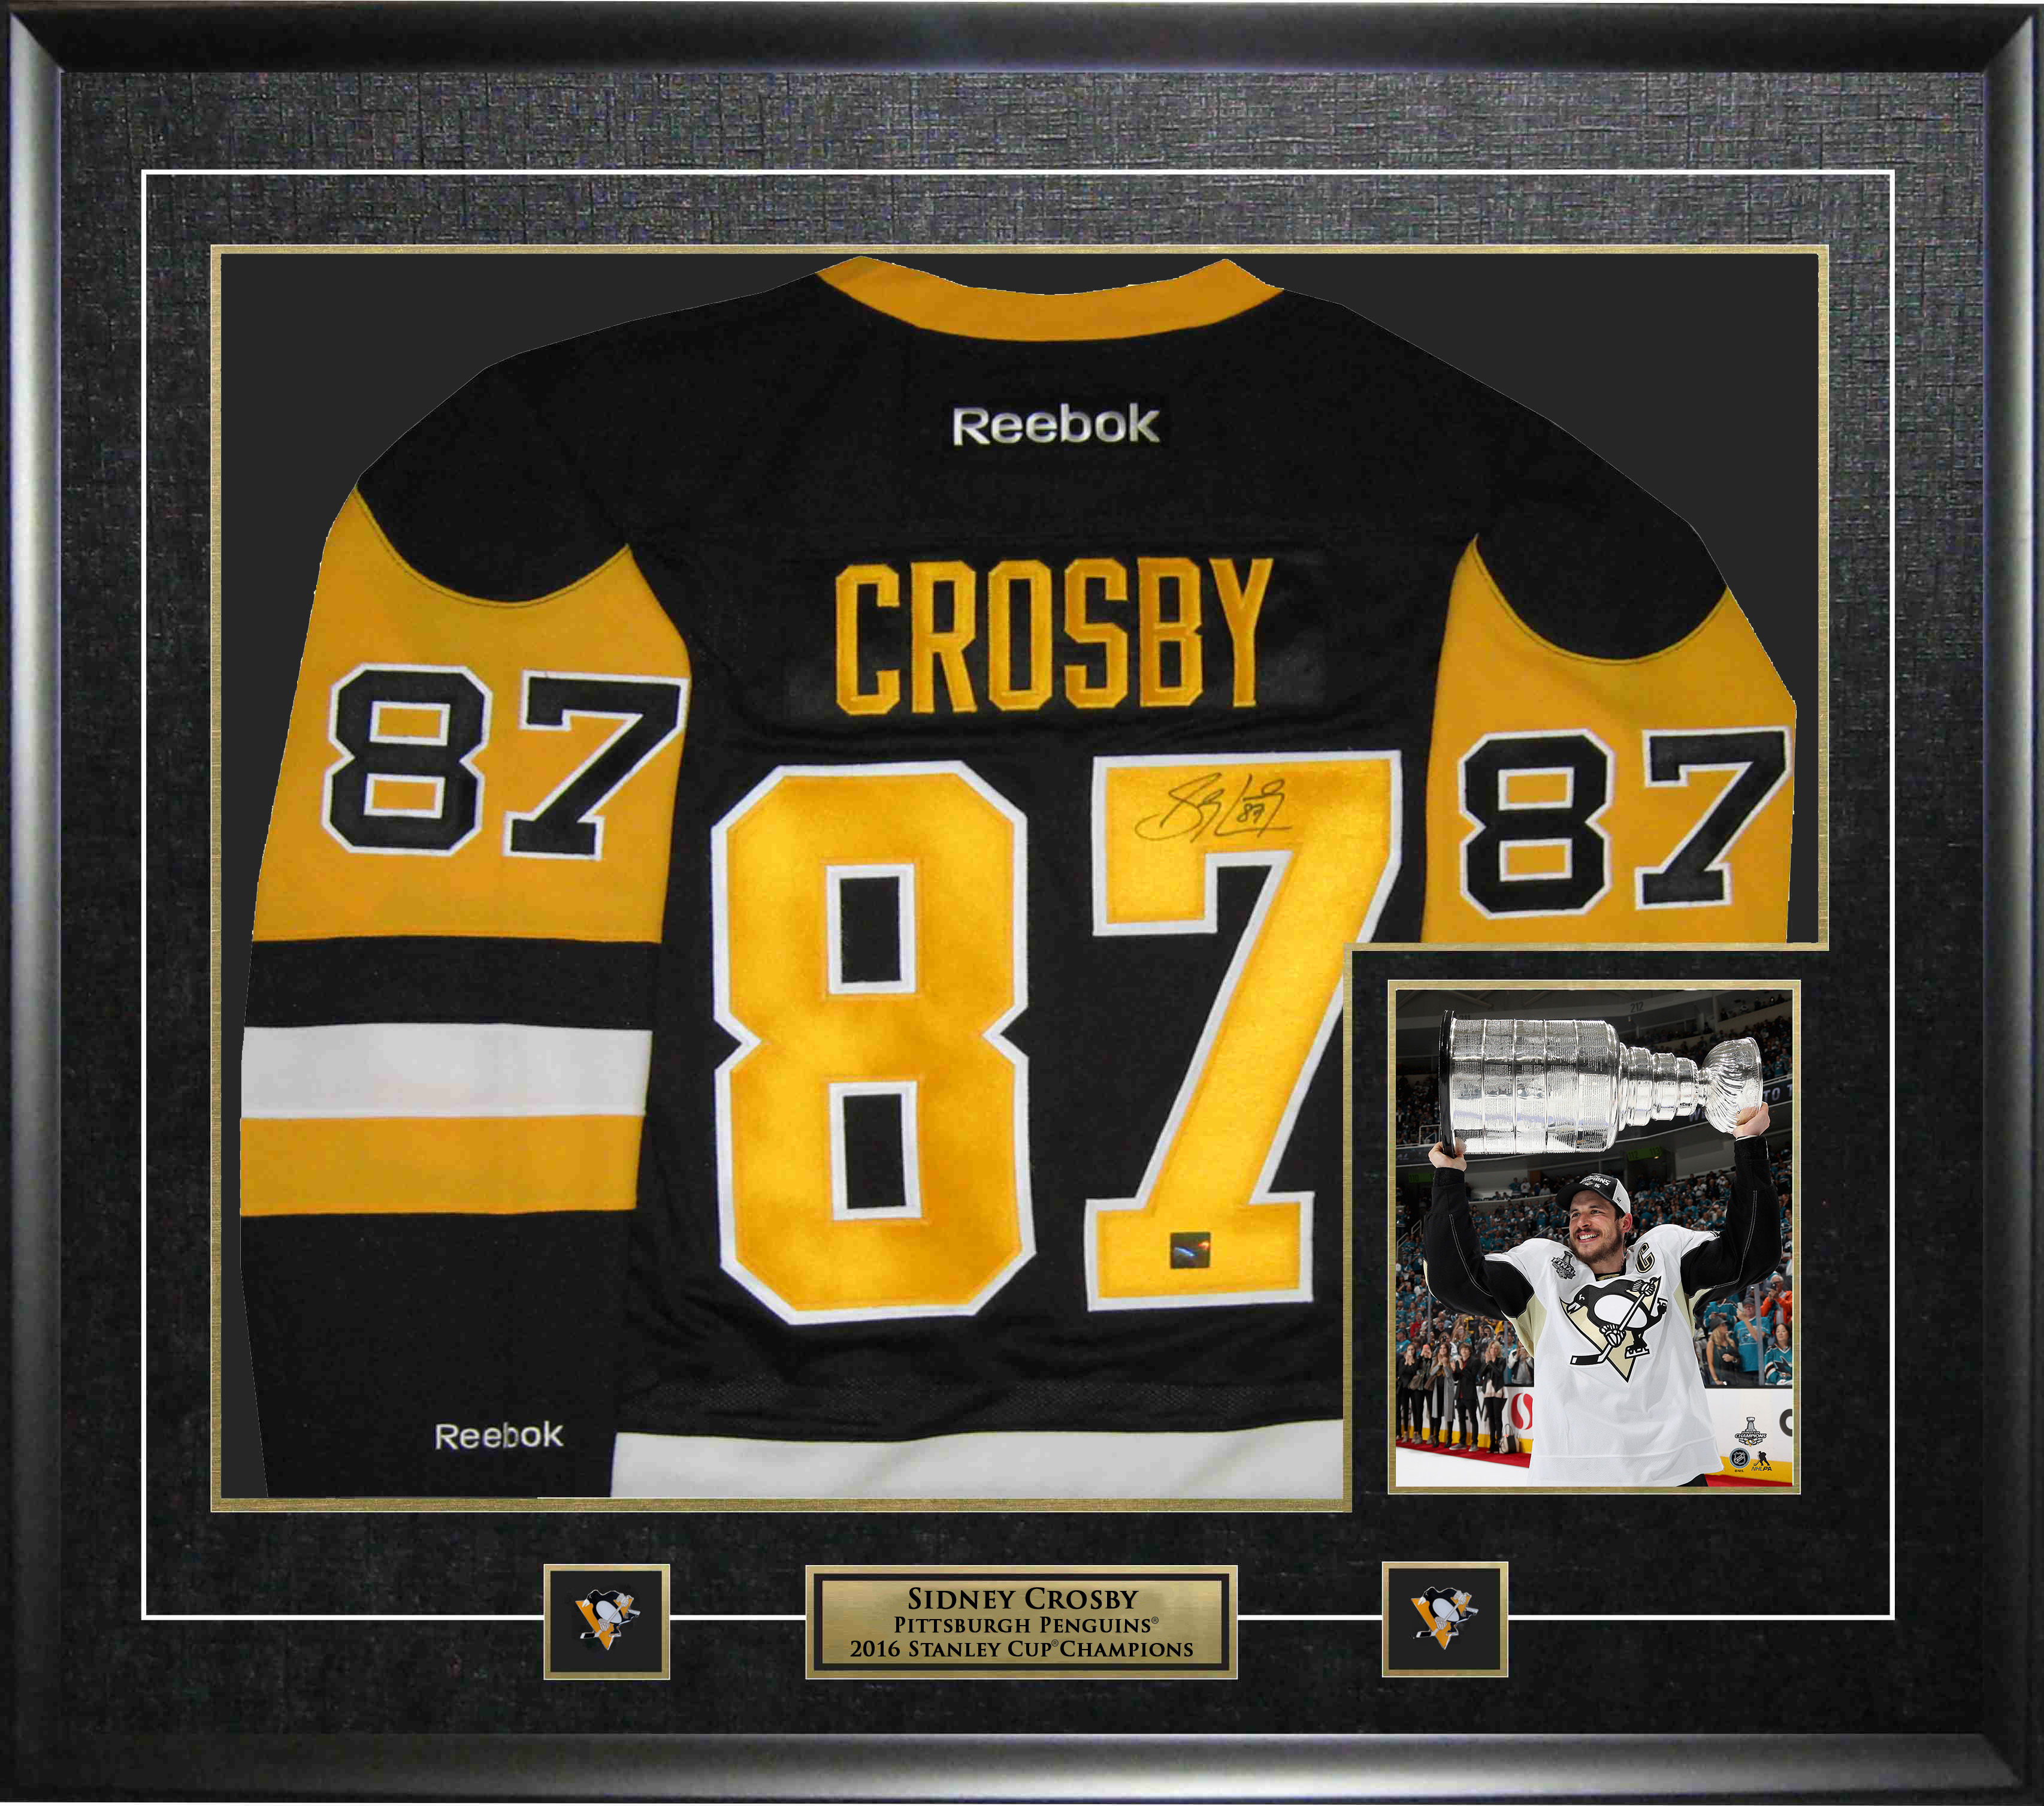 9a8b7e369 ... Pittsburgh Penguins Jersey.  west coast authentic nhl penguins sidney crosby framed autographed jersey